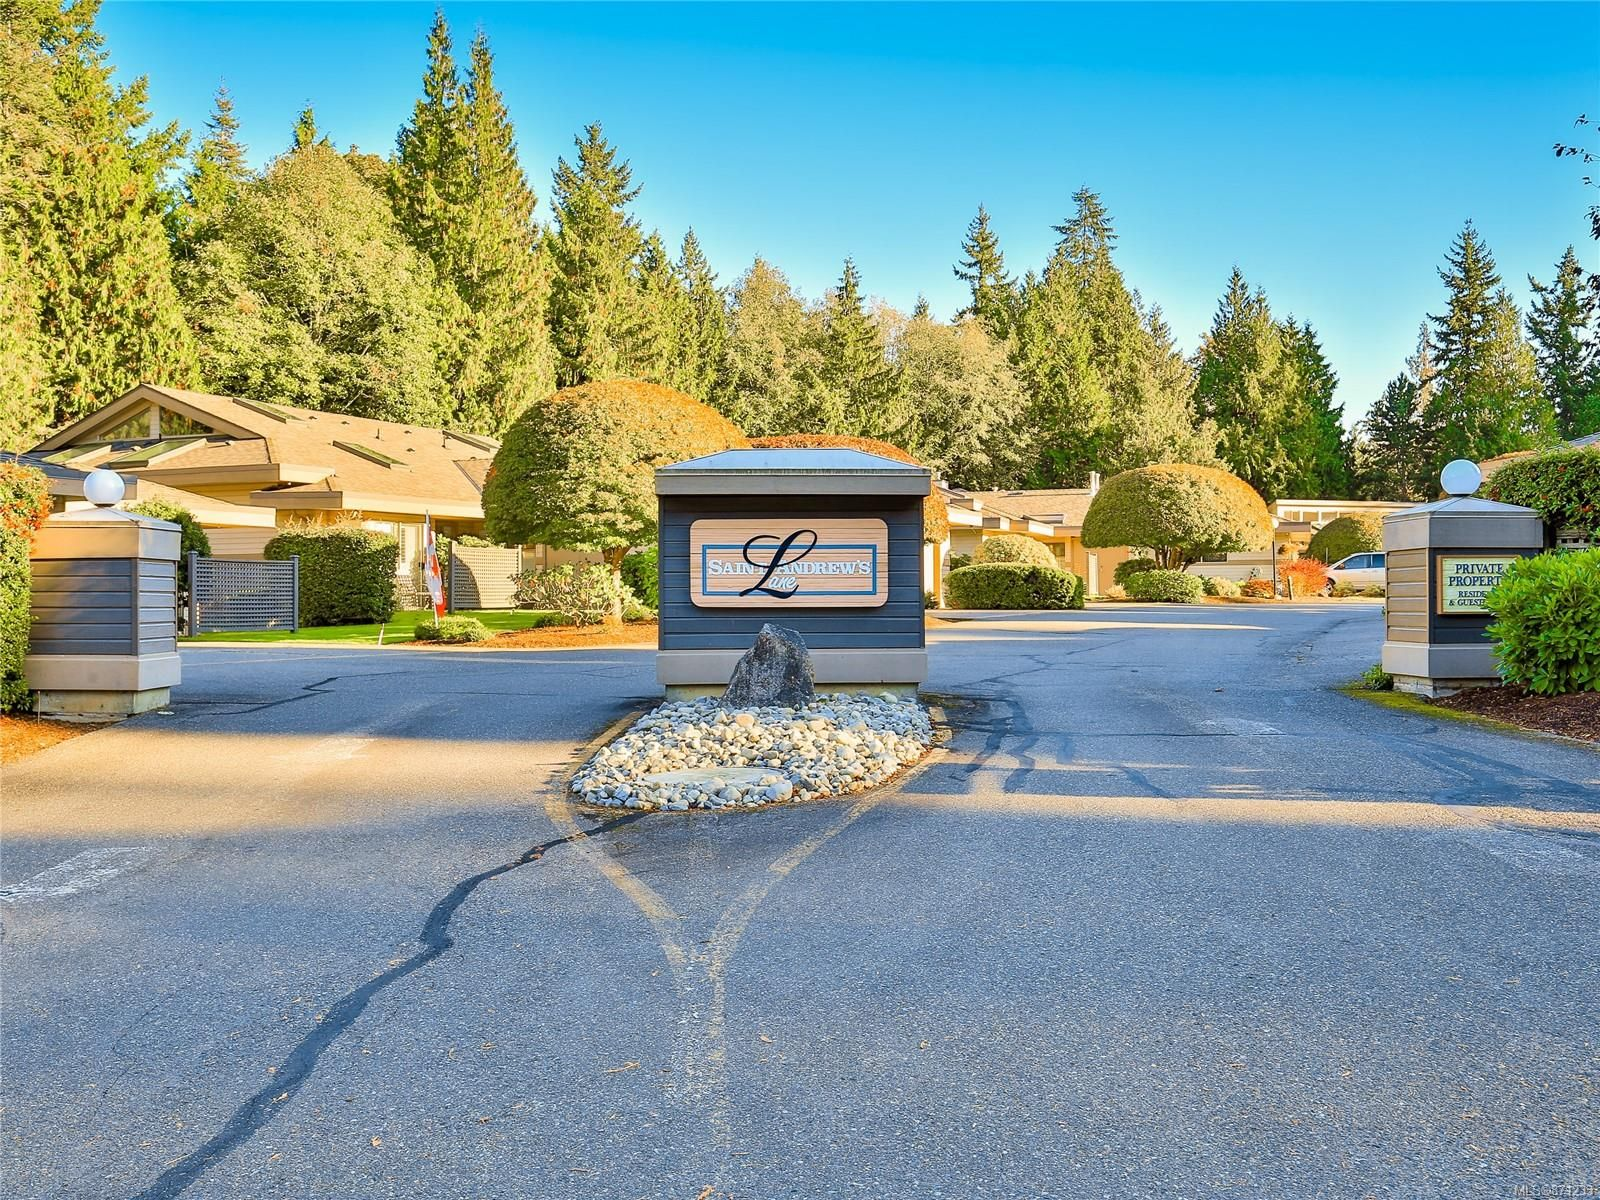 Main Photo: 924 St. Andrews Lane in : PQ French Creek Row/Townhouse for sale (Parksville/Qualicum)  : MLS®# 871233